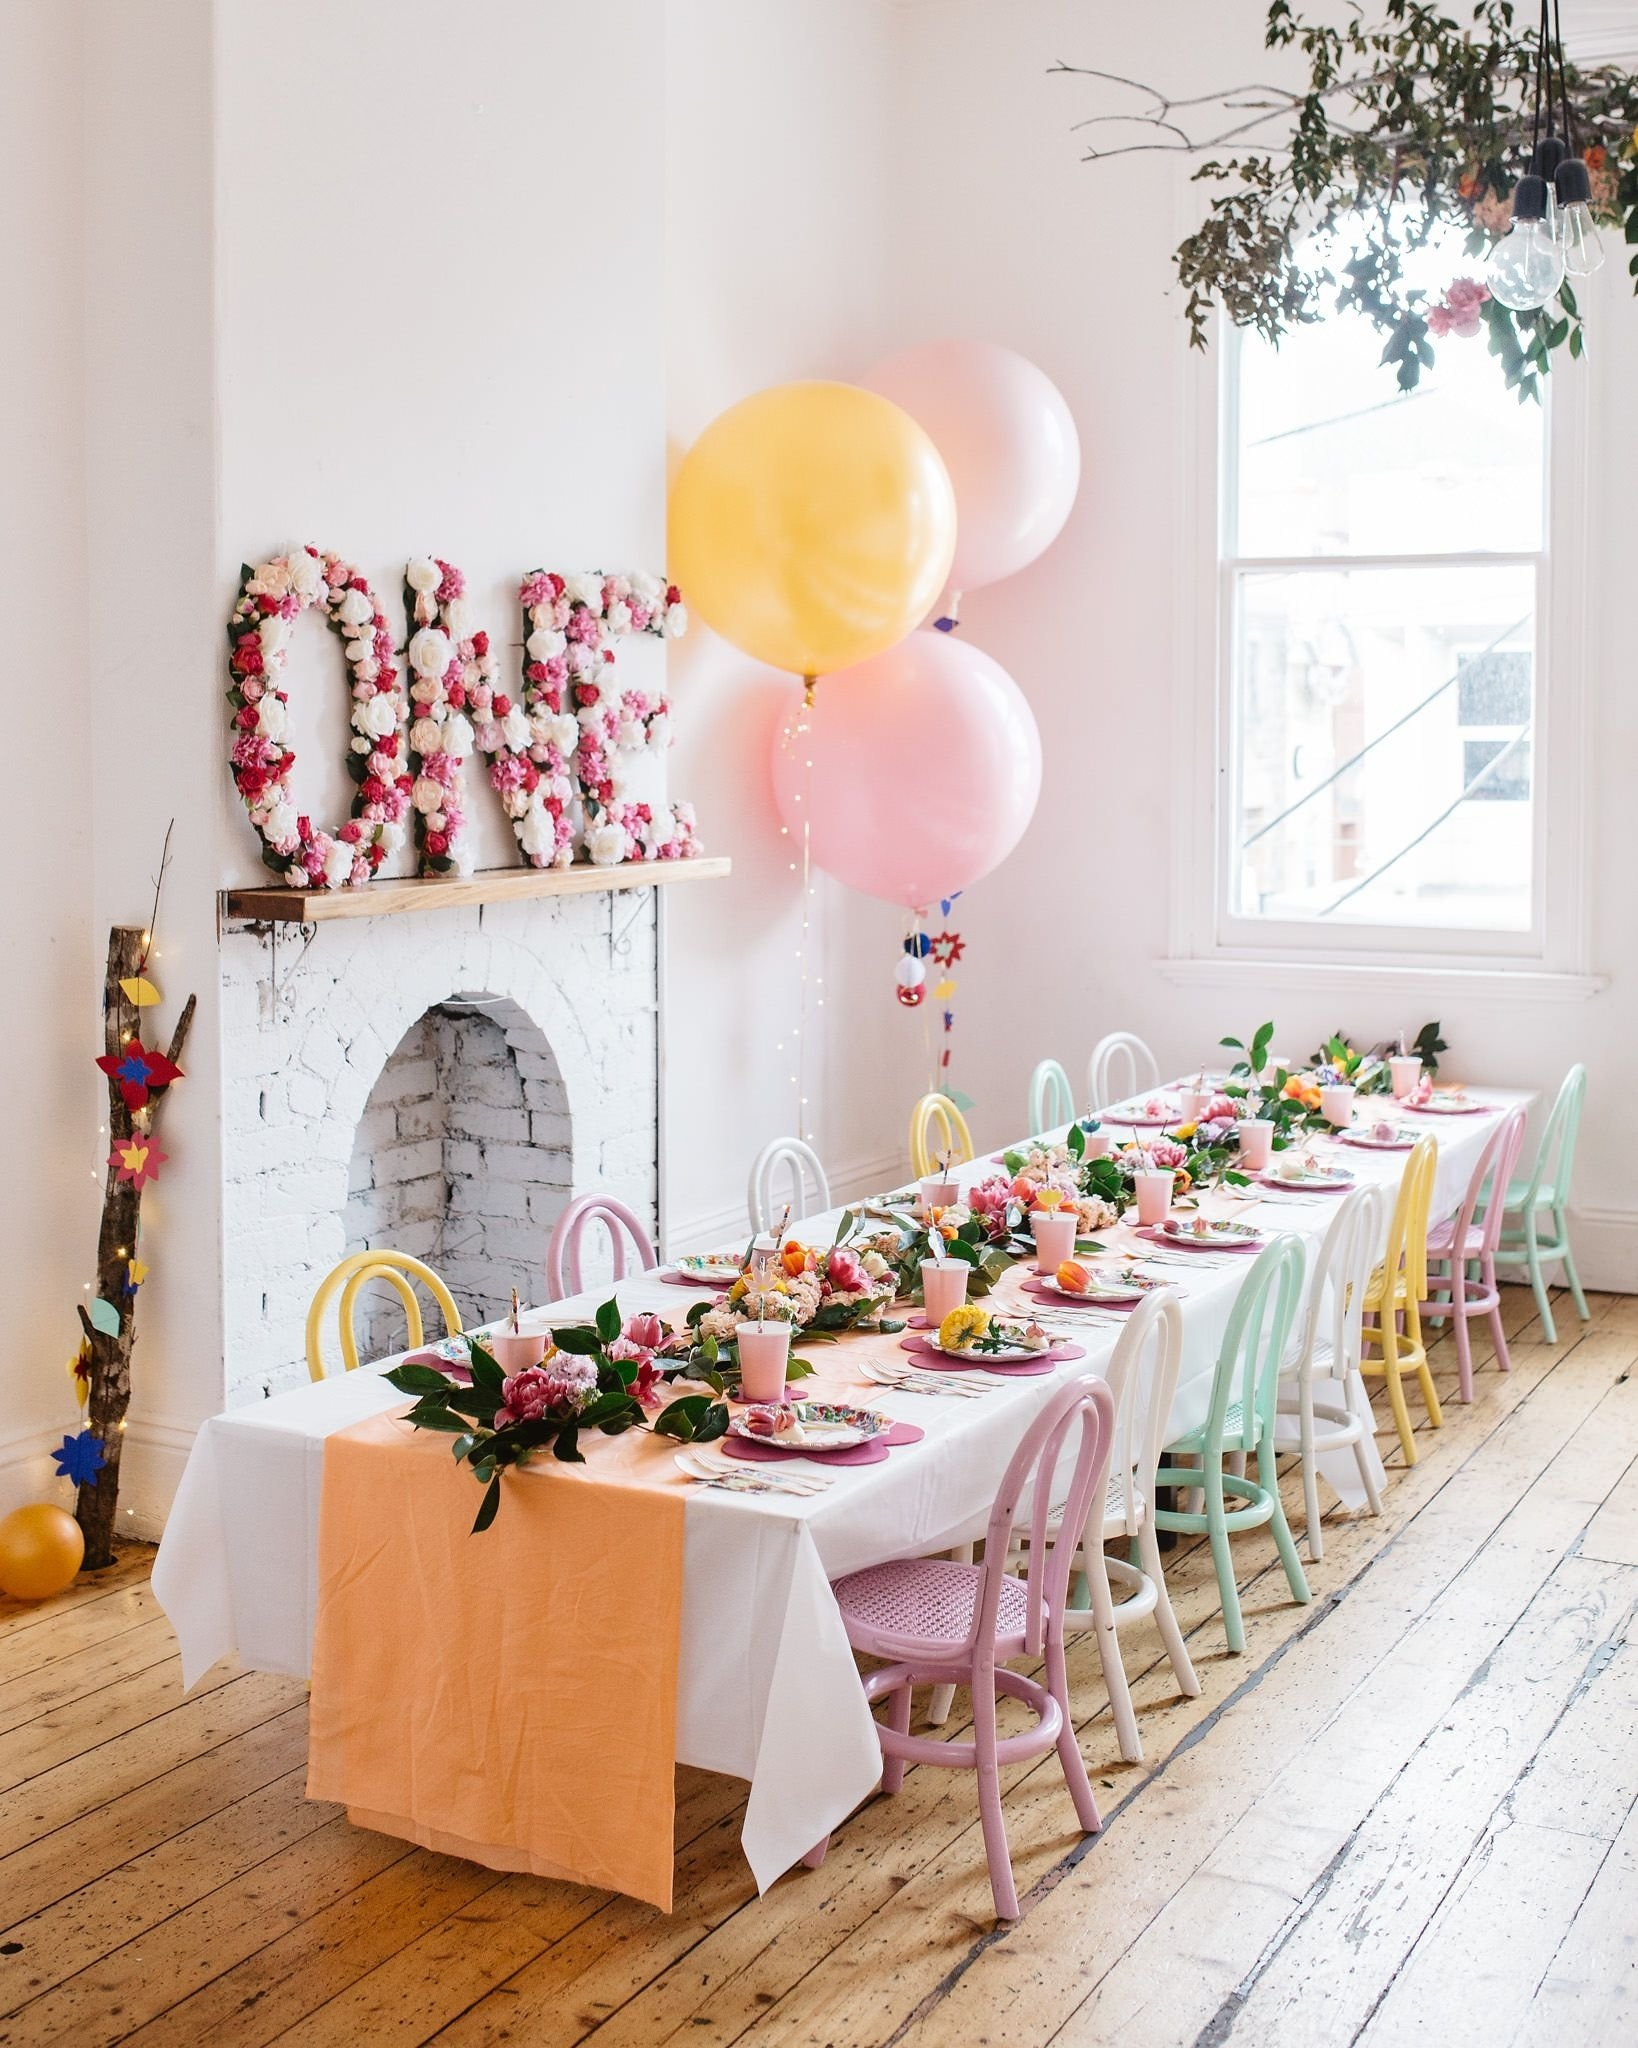 10 Best Ideas For A One Year Old Birthday Party a cute one year old birthday party although one might be a little 2020